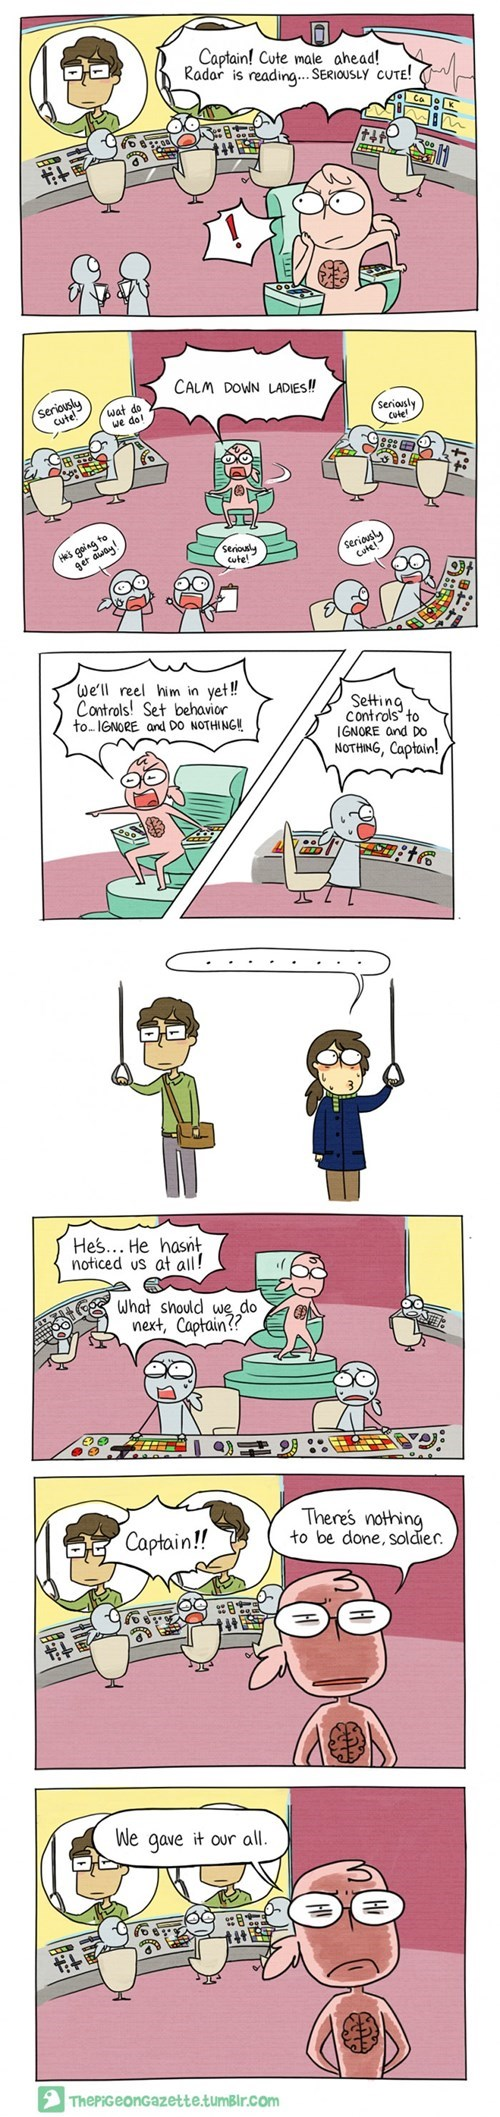 funny-web-comics-getting-the-right-kind-of-attention-is-hard